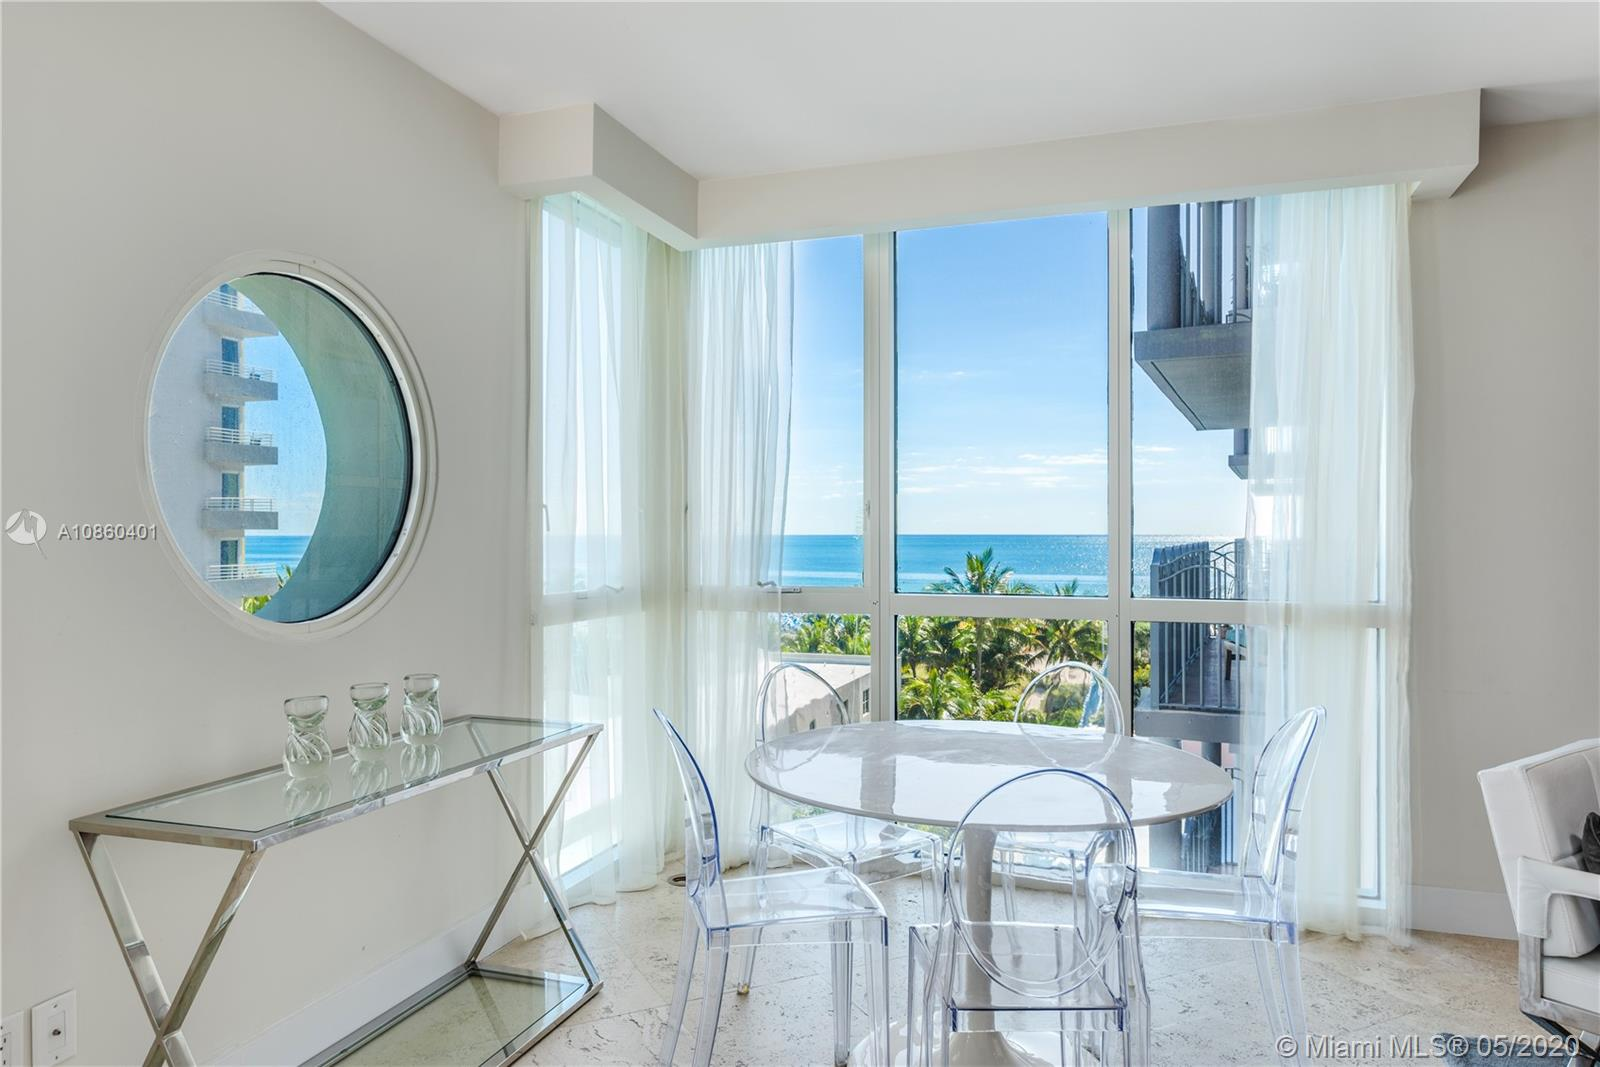 Live in the heart of South Beach in the beautiful Michael Graves building! Two bedrooms and two bathrooms with DIRECT ocean views from floor to ceiling windows in living room. Renovated kitchen with stainless steel appliances and tons of closet space. Ocean front luxury building with full amenities including beach service. Long term lease only at $5,500 a month.